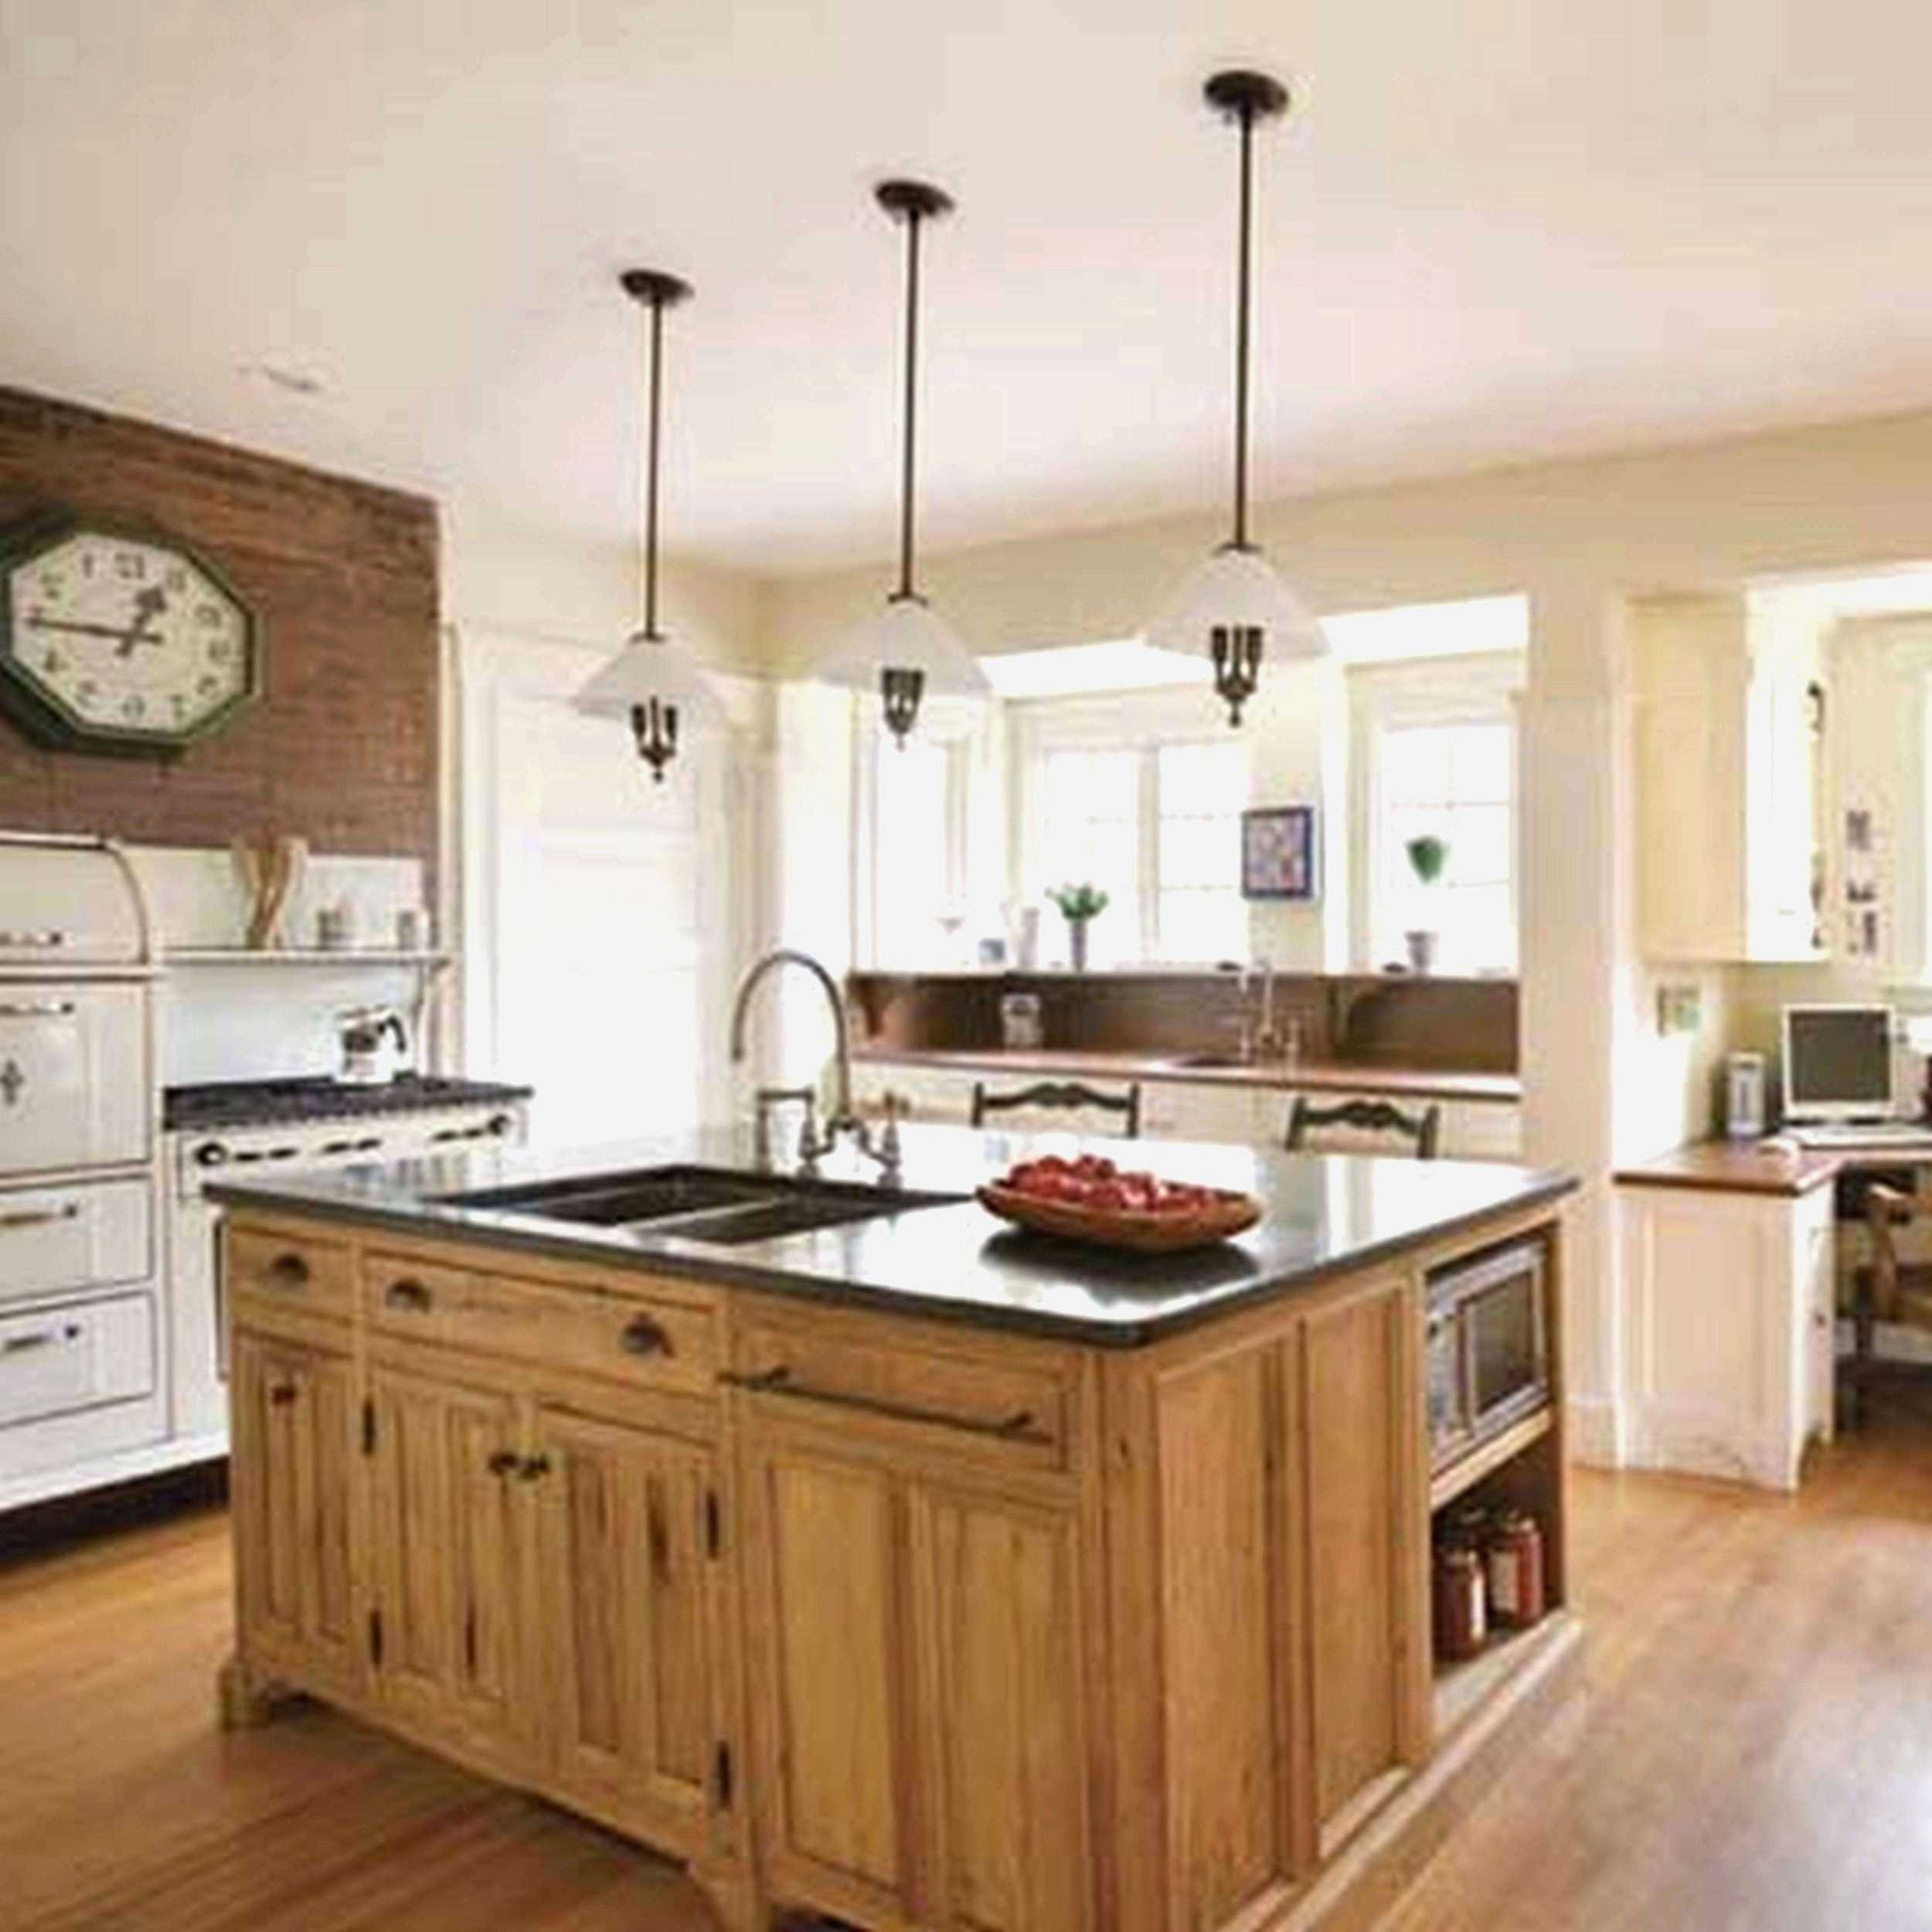 Best Hardwood for Kitchen Floor Of Best Of Kitchen Floor Tiles Images Home Inspiration Interior Regarding Kitchen Backsplashes Kitchen Kitchen Designing Kitchen Designing 0d Best Of Kitchen Floor Tiles Images